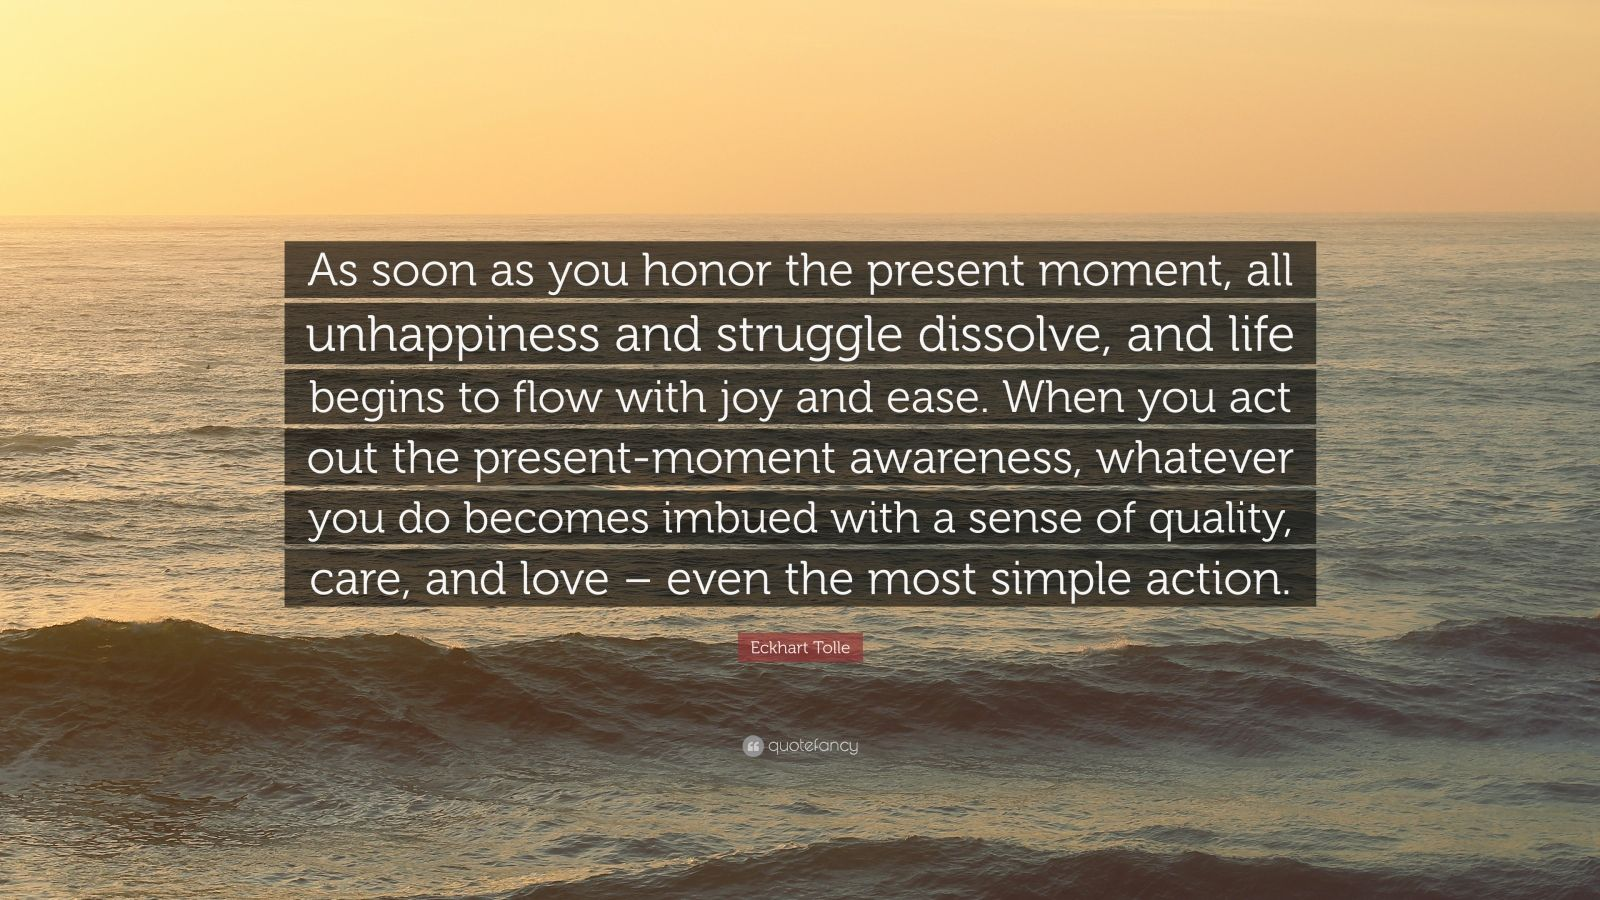 "Eckhart Tolle Quote: ""As soon as you honor the present moment, all unhappiness and struggle dissolve, and life begins to flow with joy and ease. When you act out the present-moment awareness, whatever you do becomes imbued with a sense of quality, care, and love – even the most simple action."""